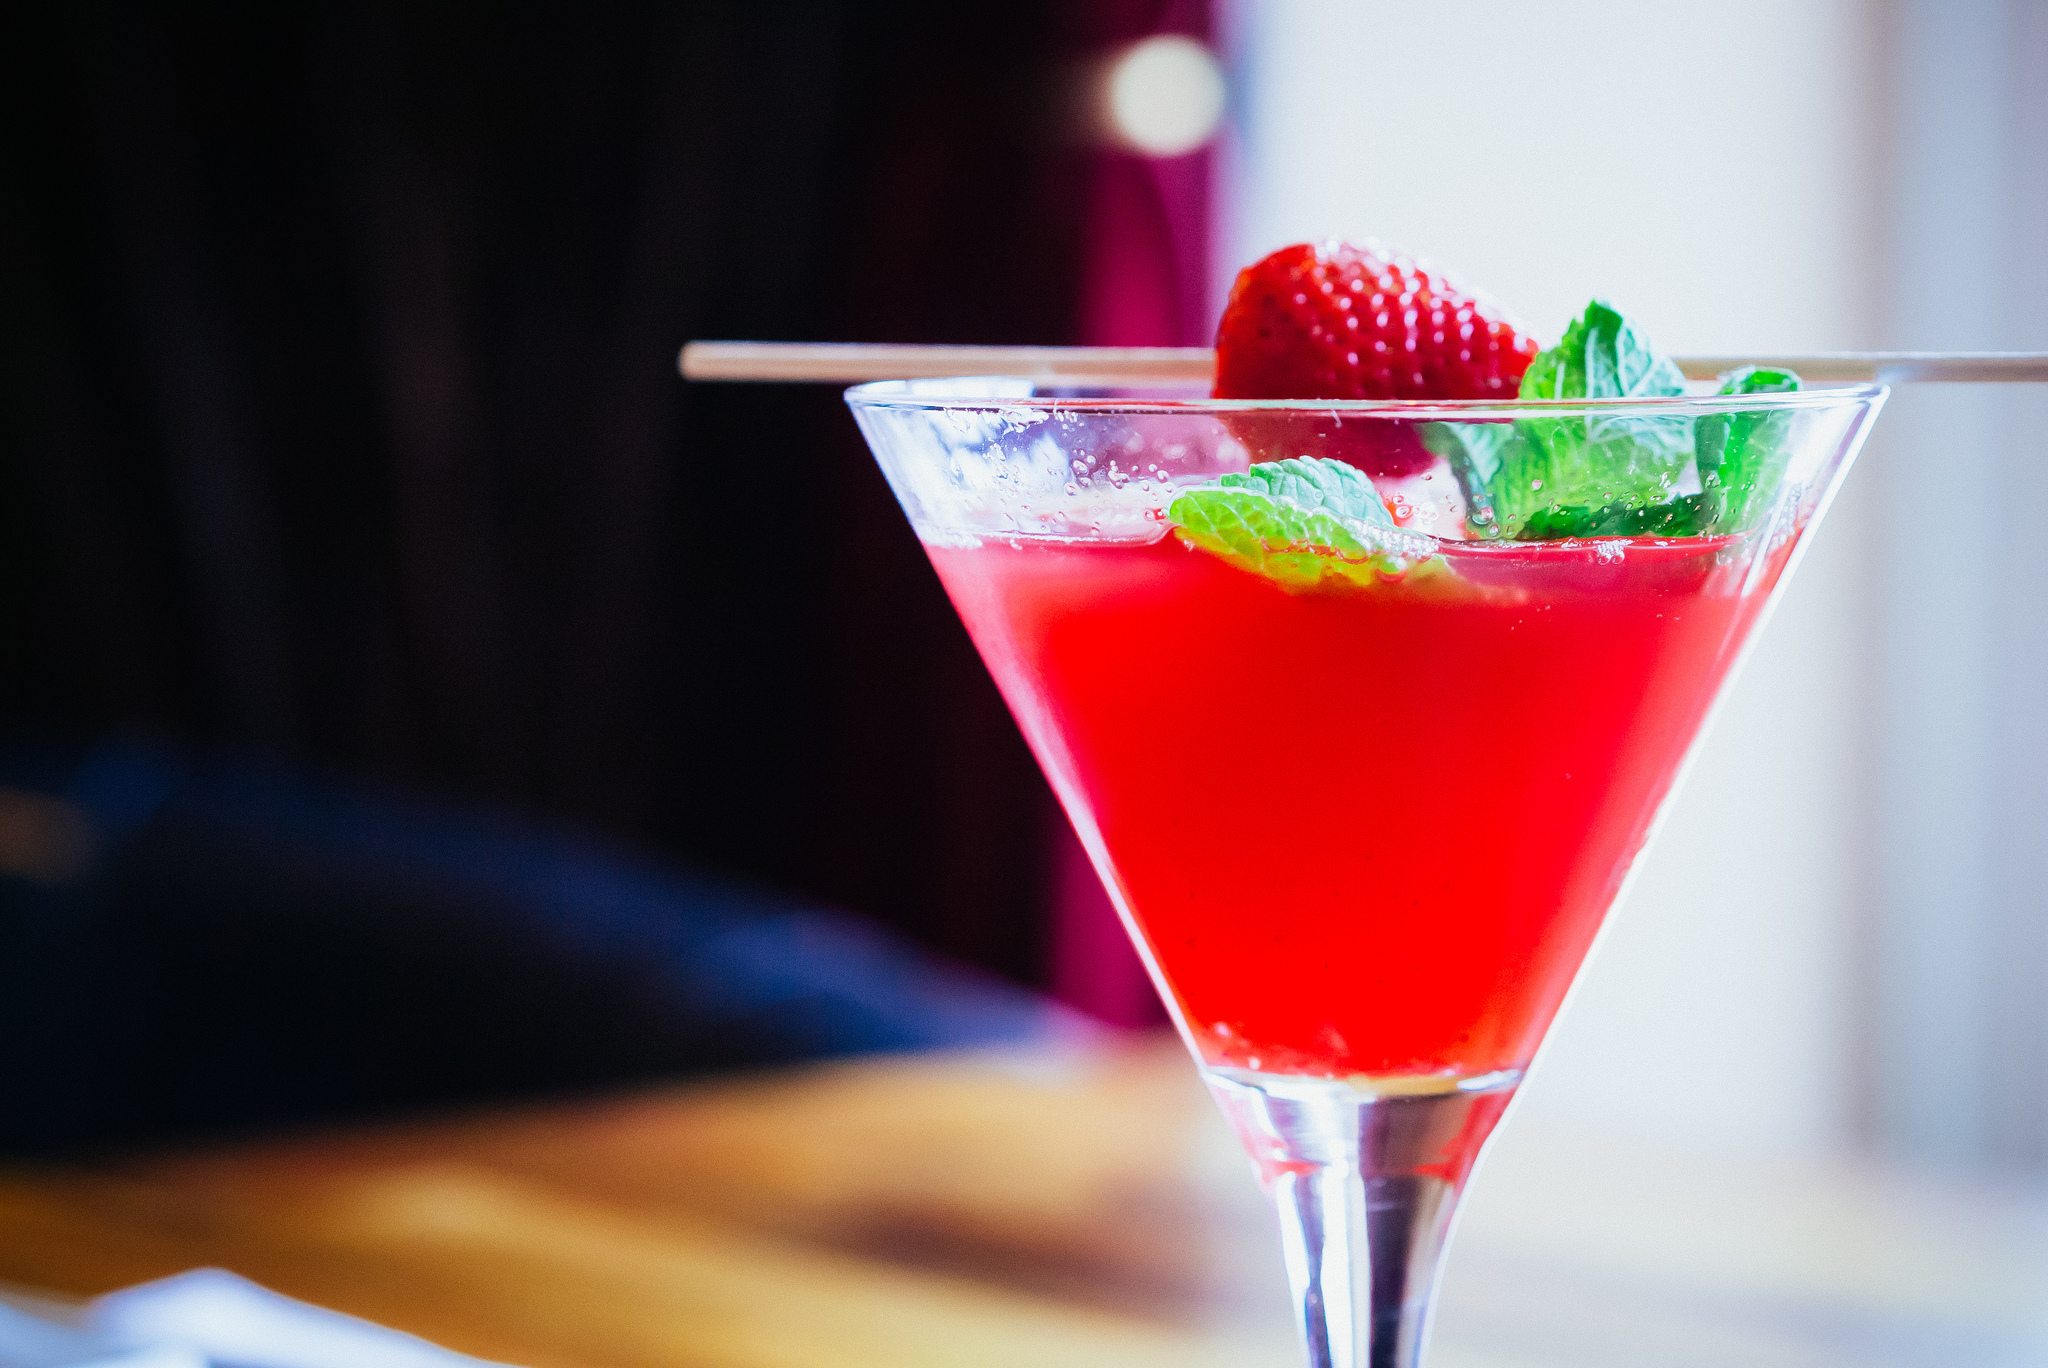 Strawberry Martini | ©daspunkt/flickr